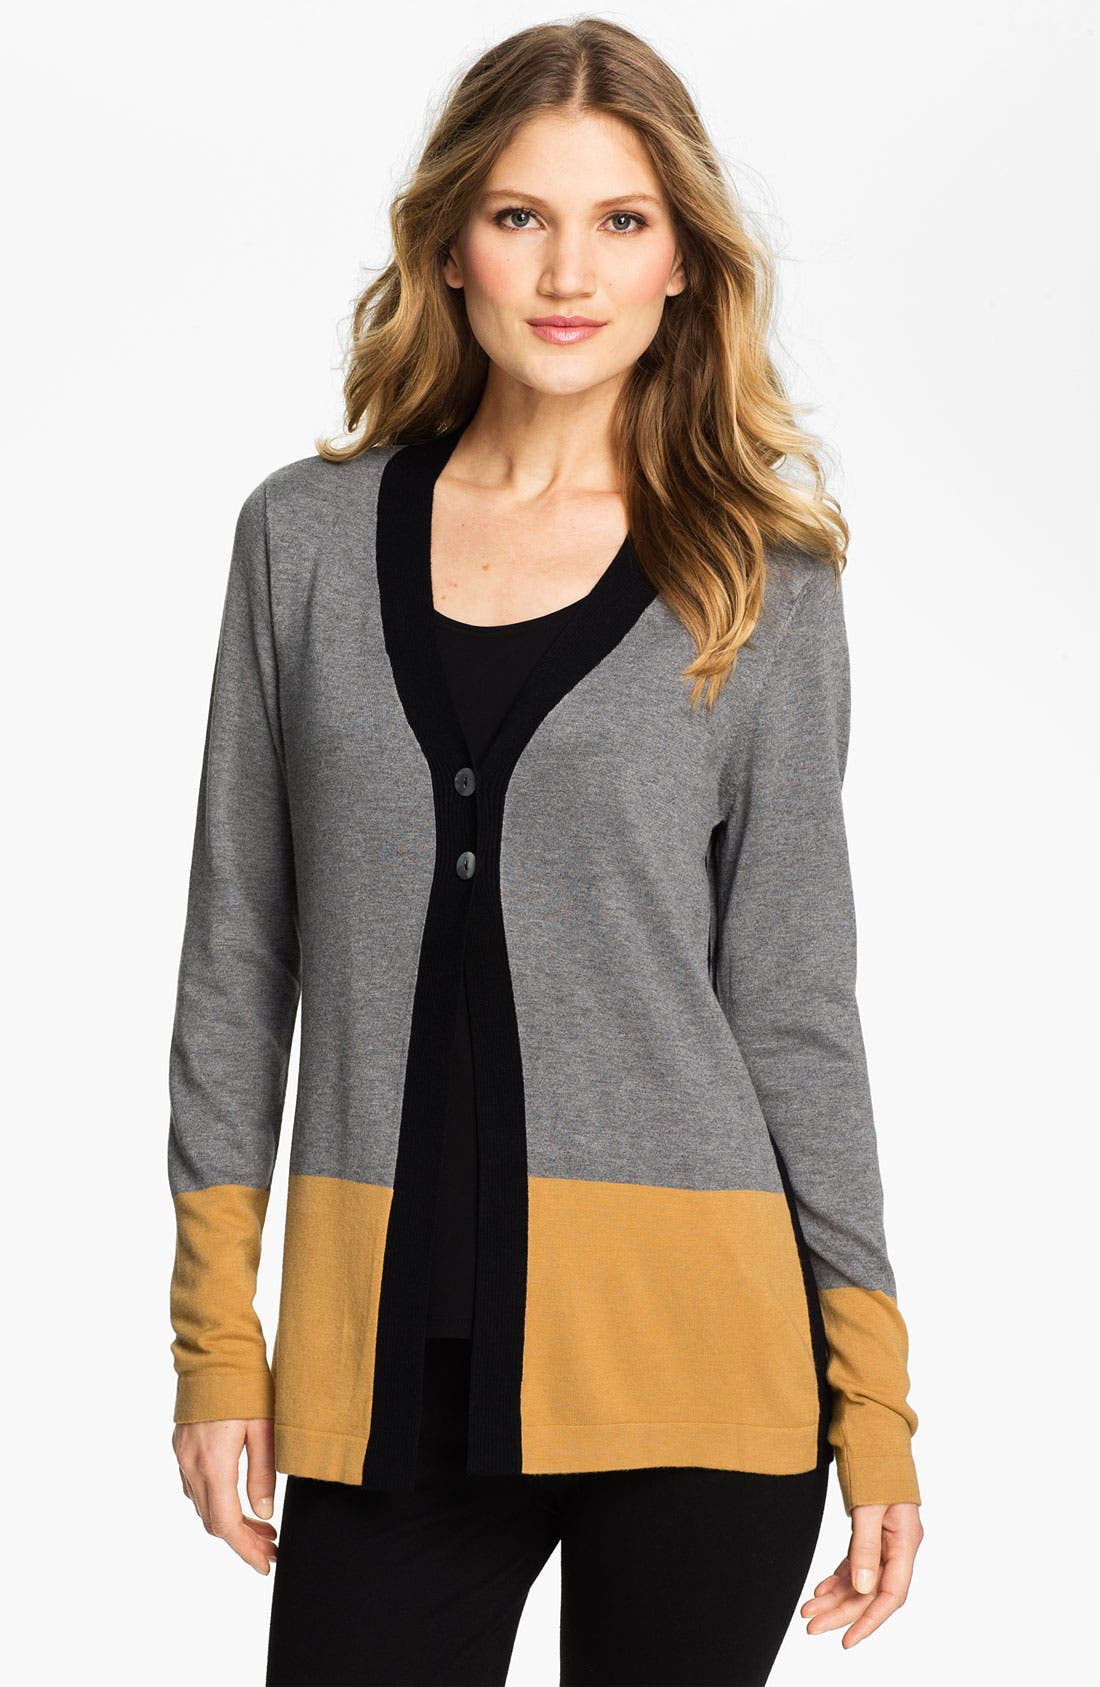 Alternate Image 1 Selected - Beatrix Ost Colorblock Cardigan (Online Exclusive)